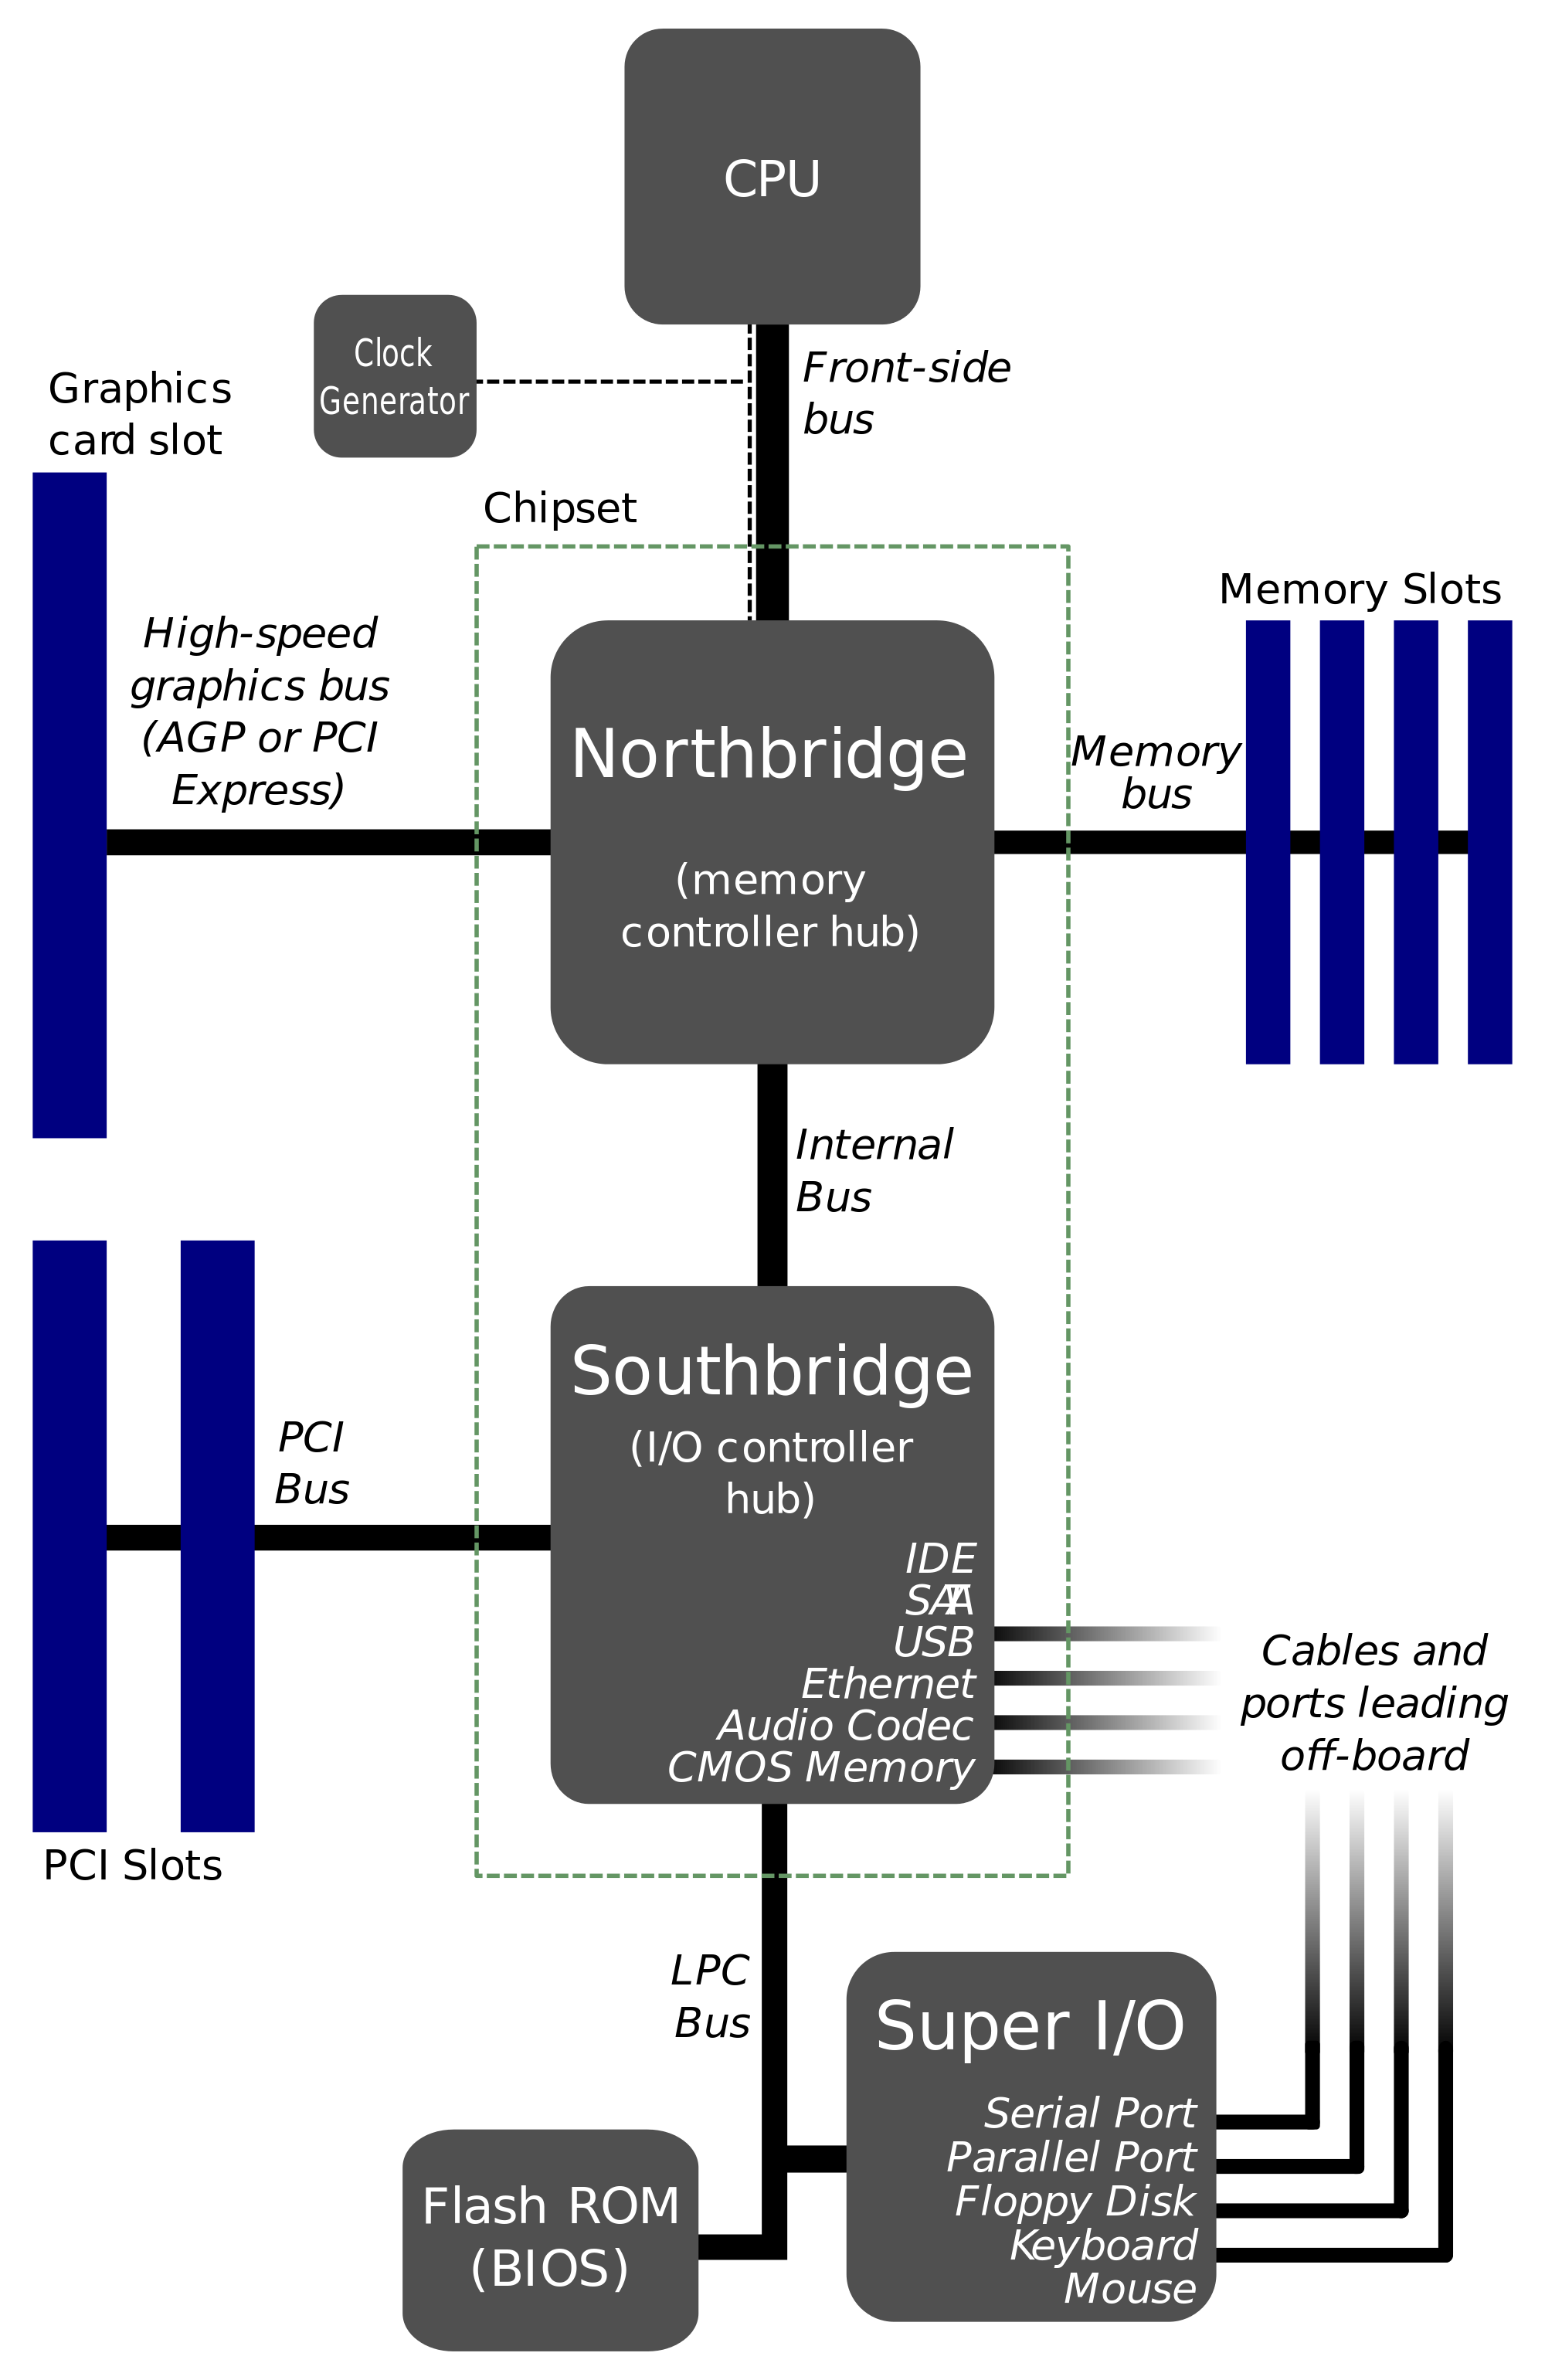 Old Motherboards Diagrams Trusted Wiring Diagram Circuit Wikipedia The Free Encyclopedia What Are Parts Of A Motherboard And Its Functions Quora Atx Layout